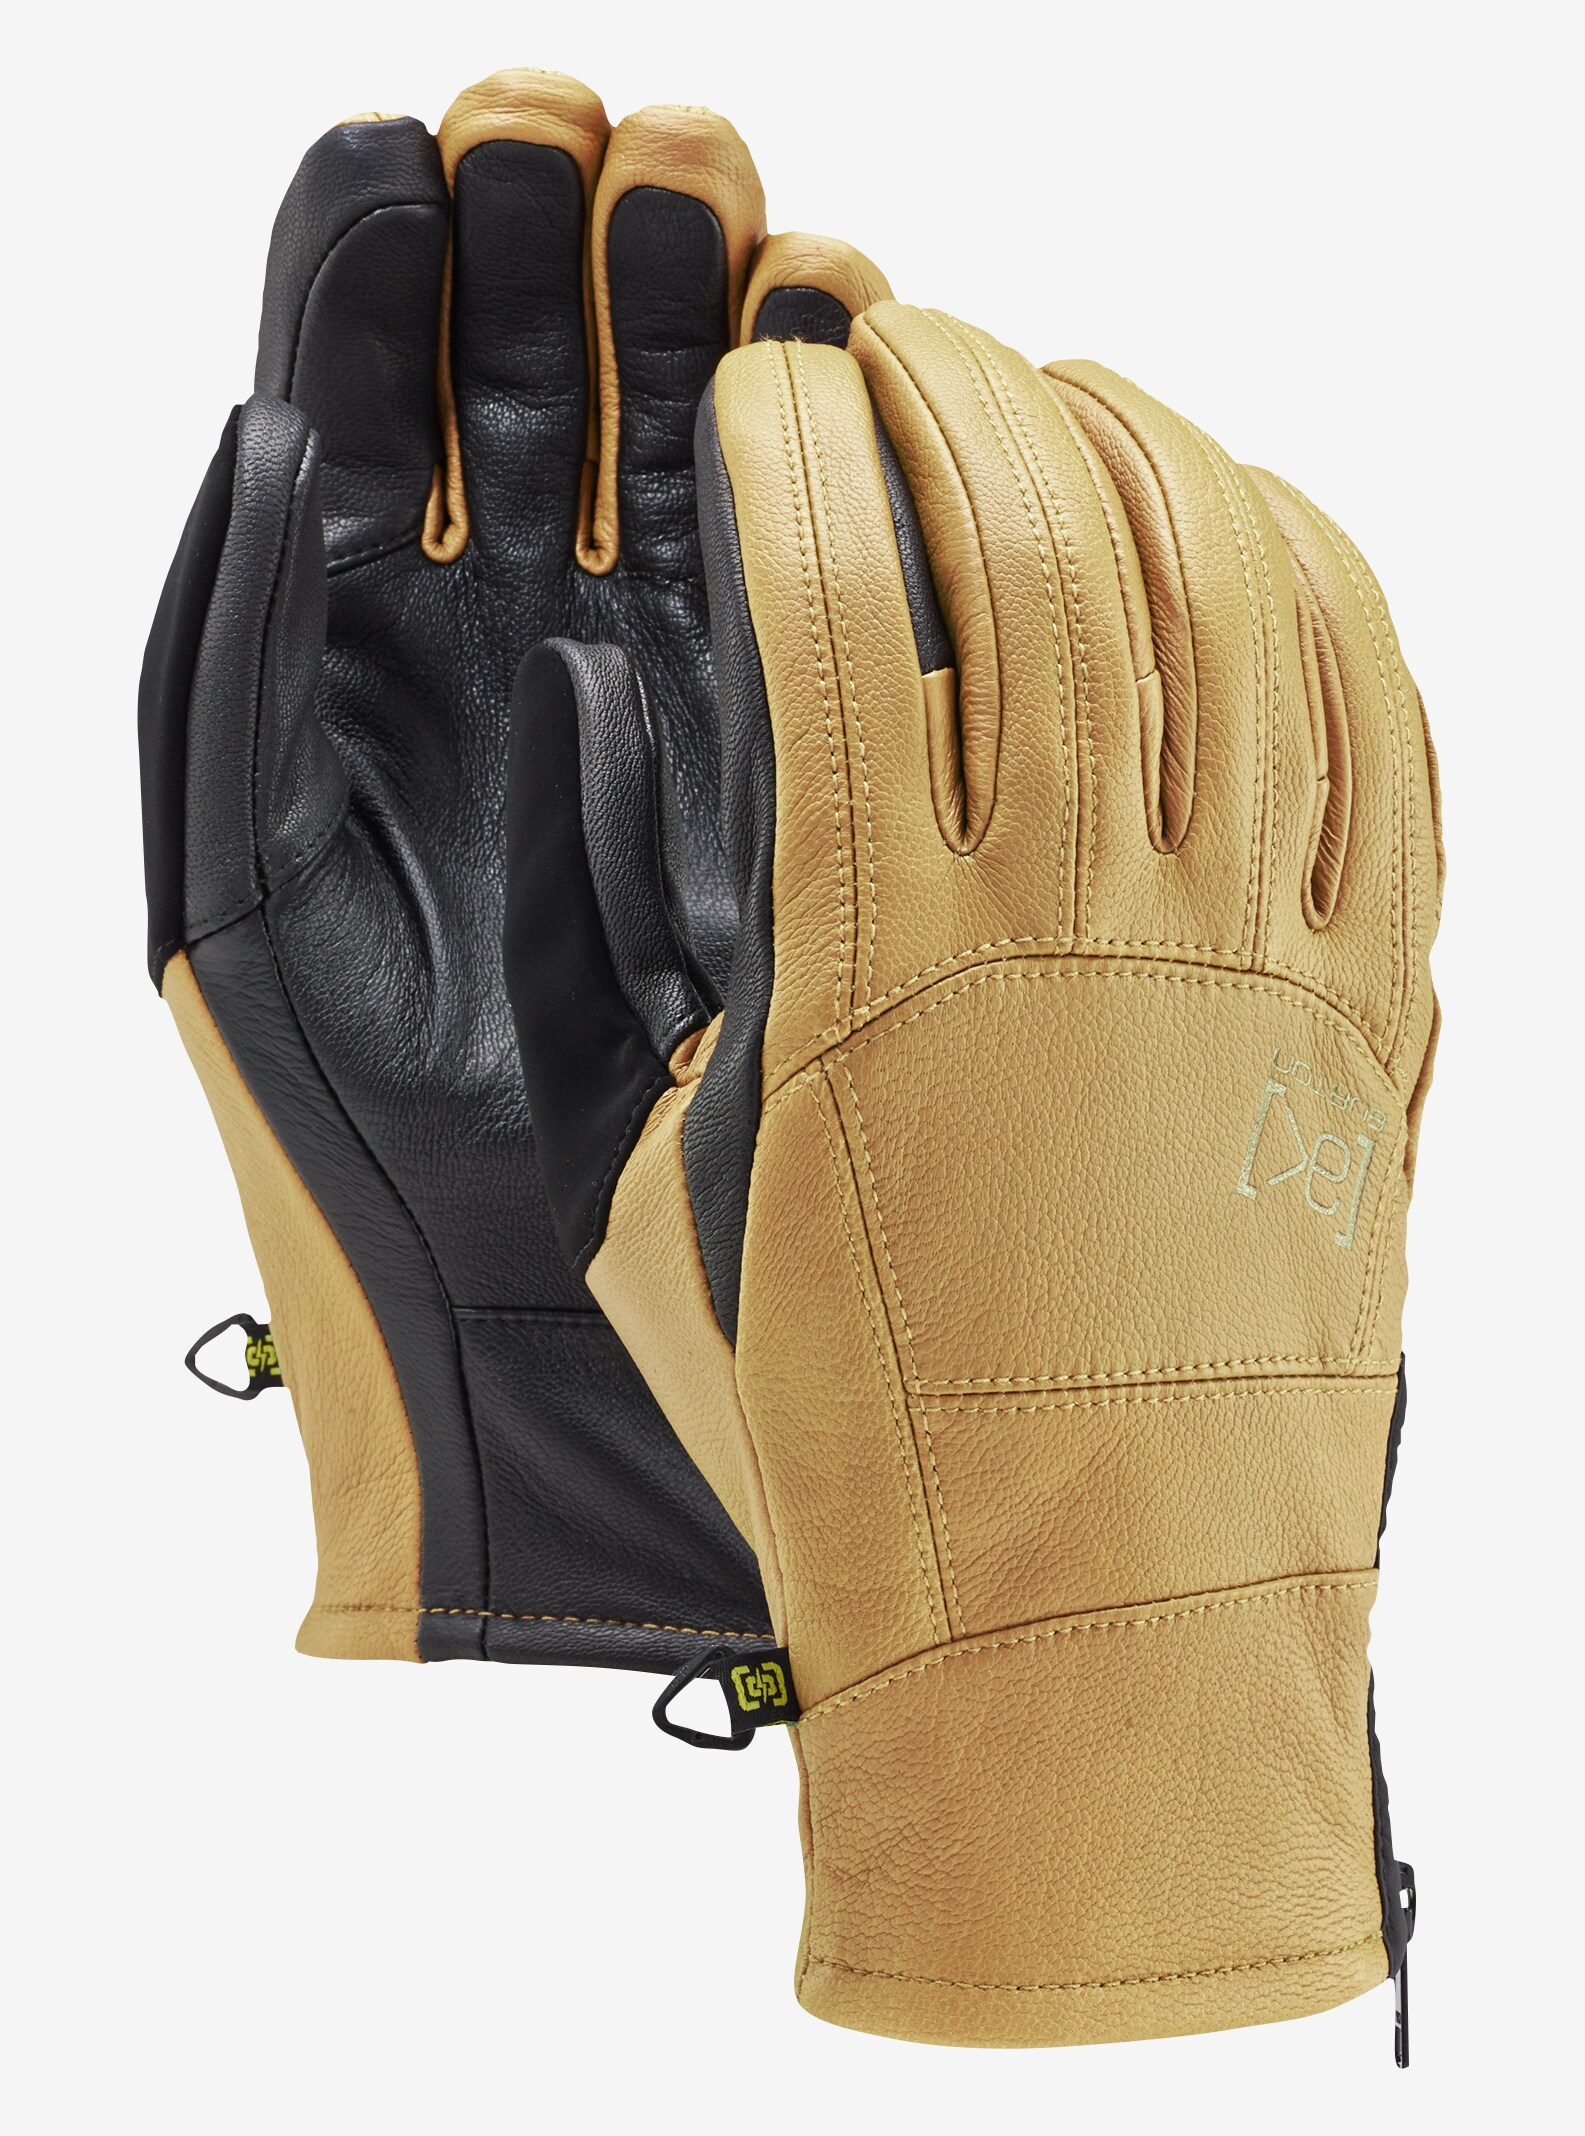 Burton [ak] Leather Tech Glove shown in Raw Hide